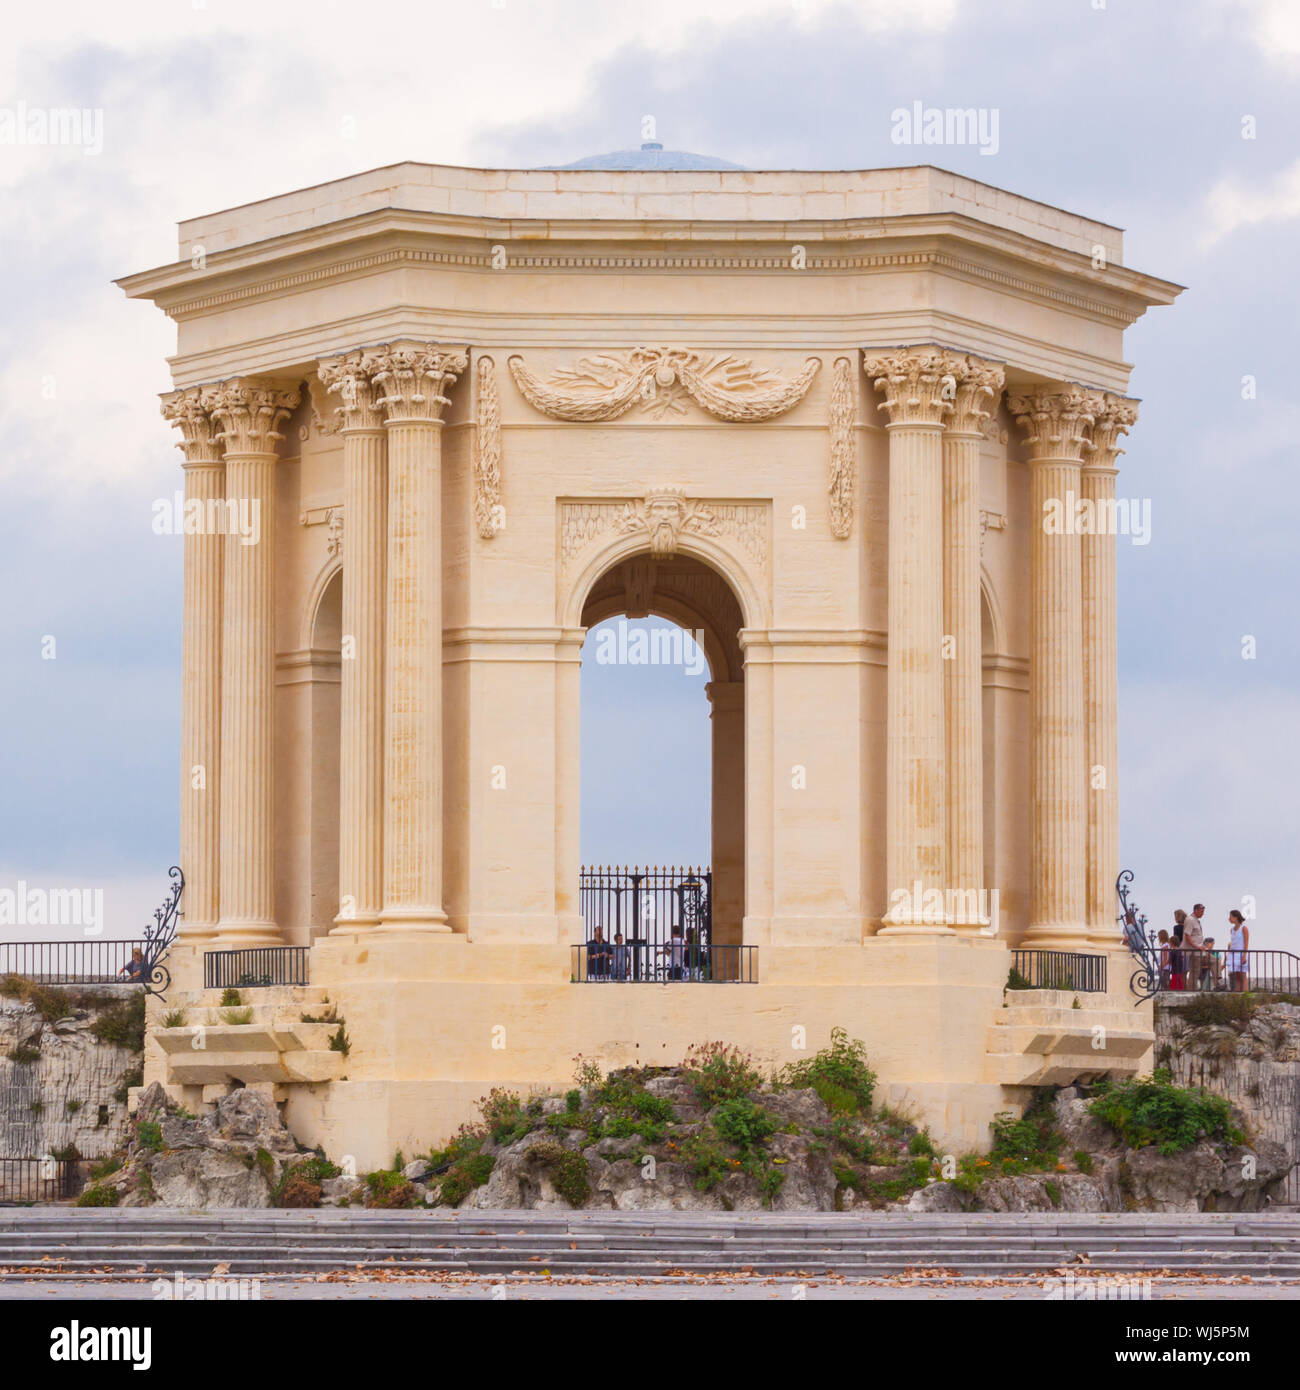 Chateau d'Eau palace - water tower in the end of aqueduct in Montpellier, France. Stock Photo